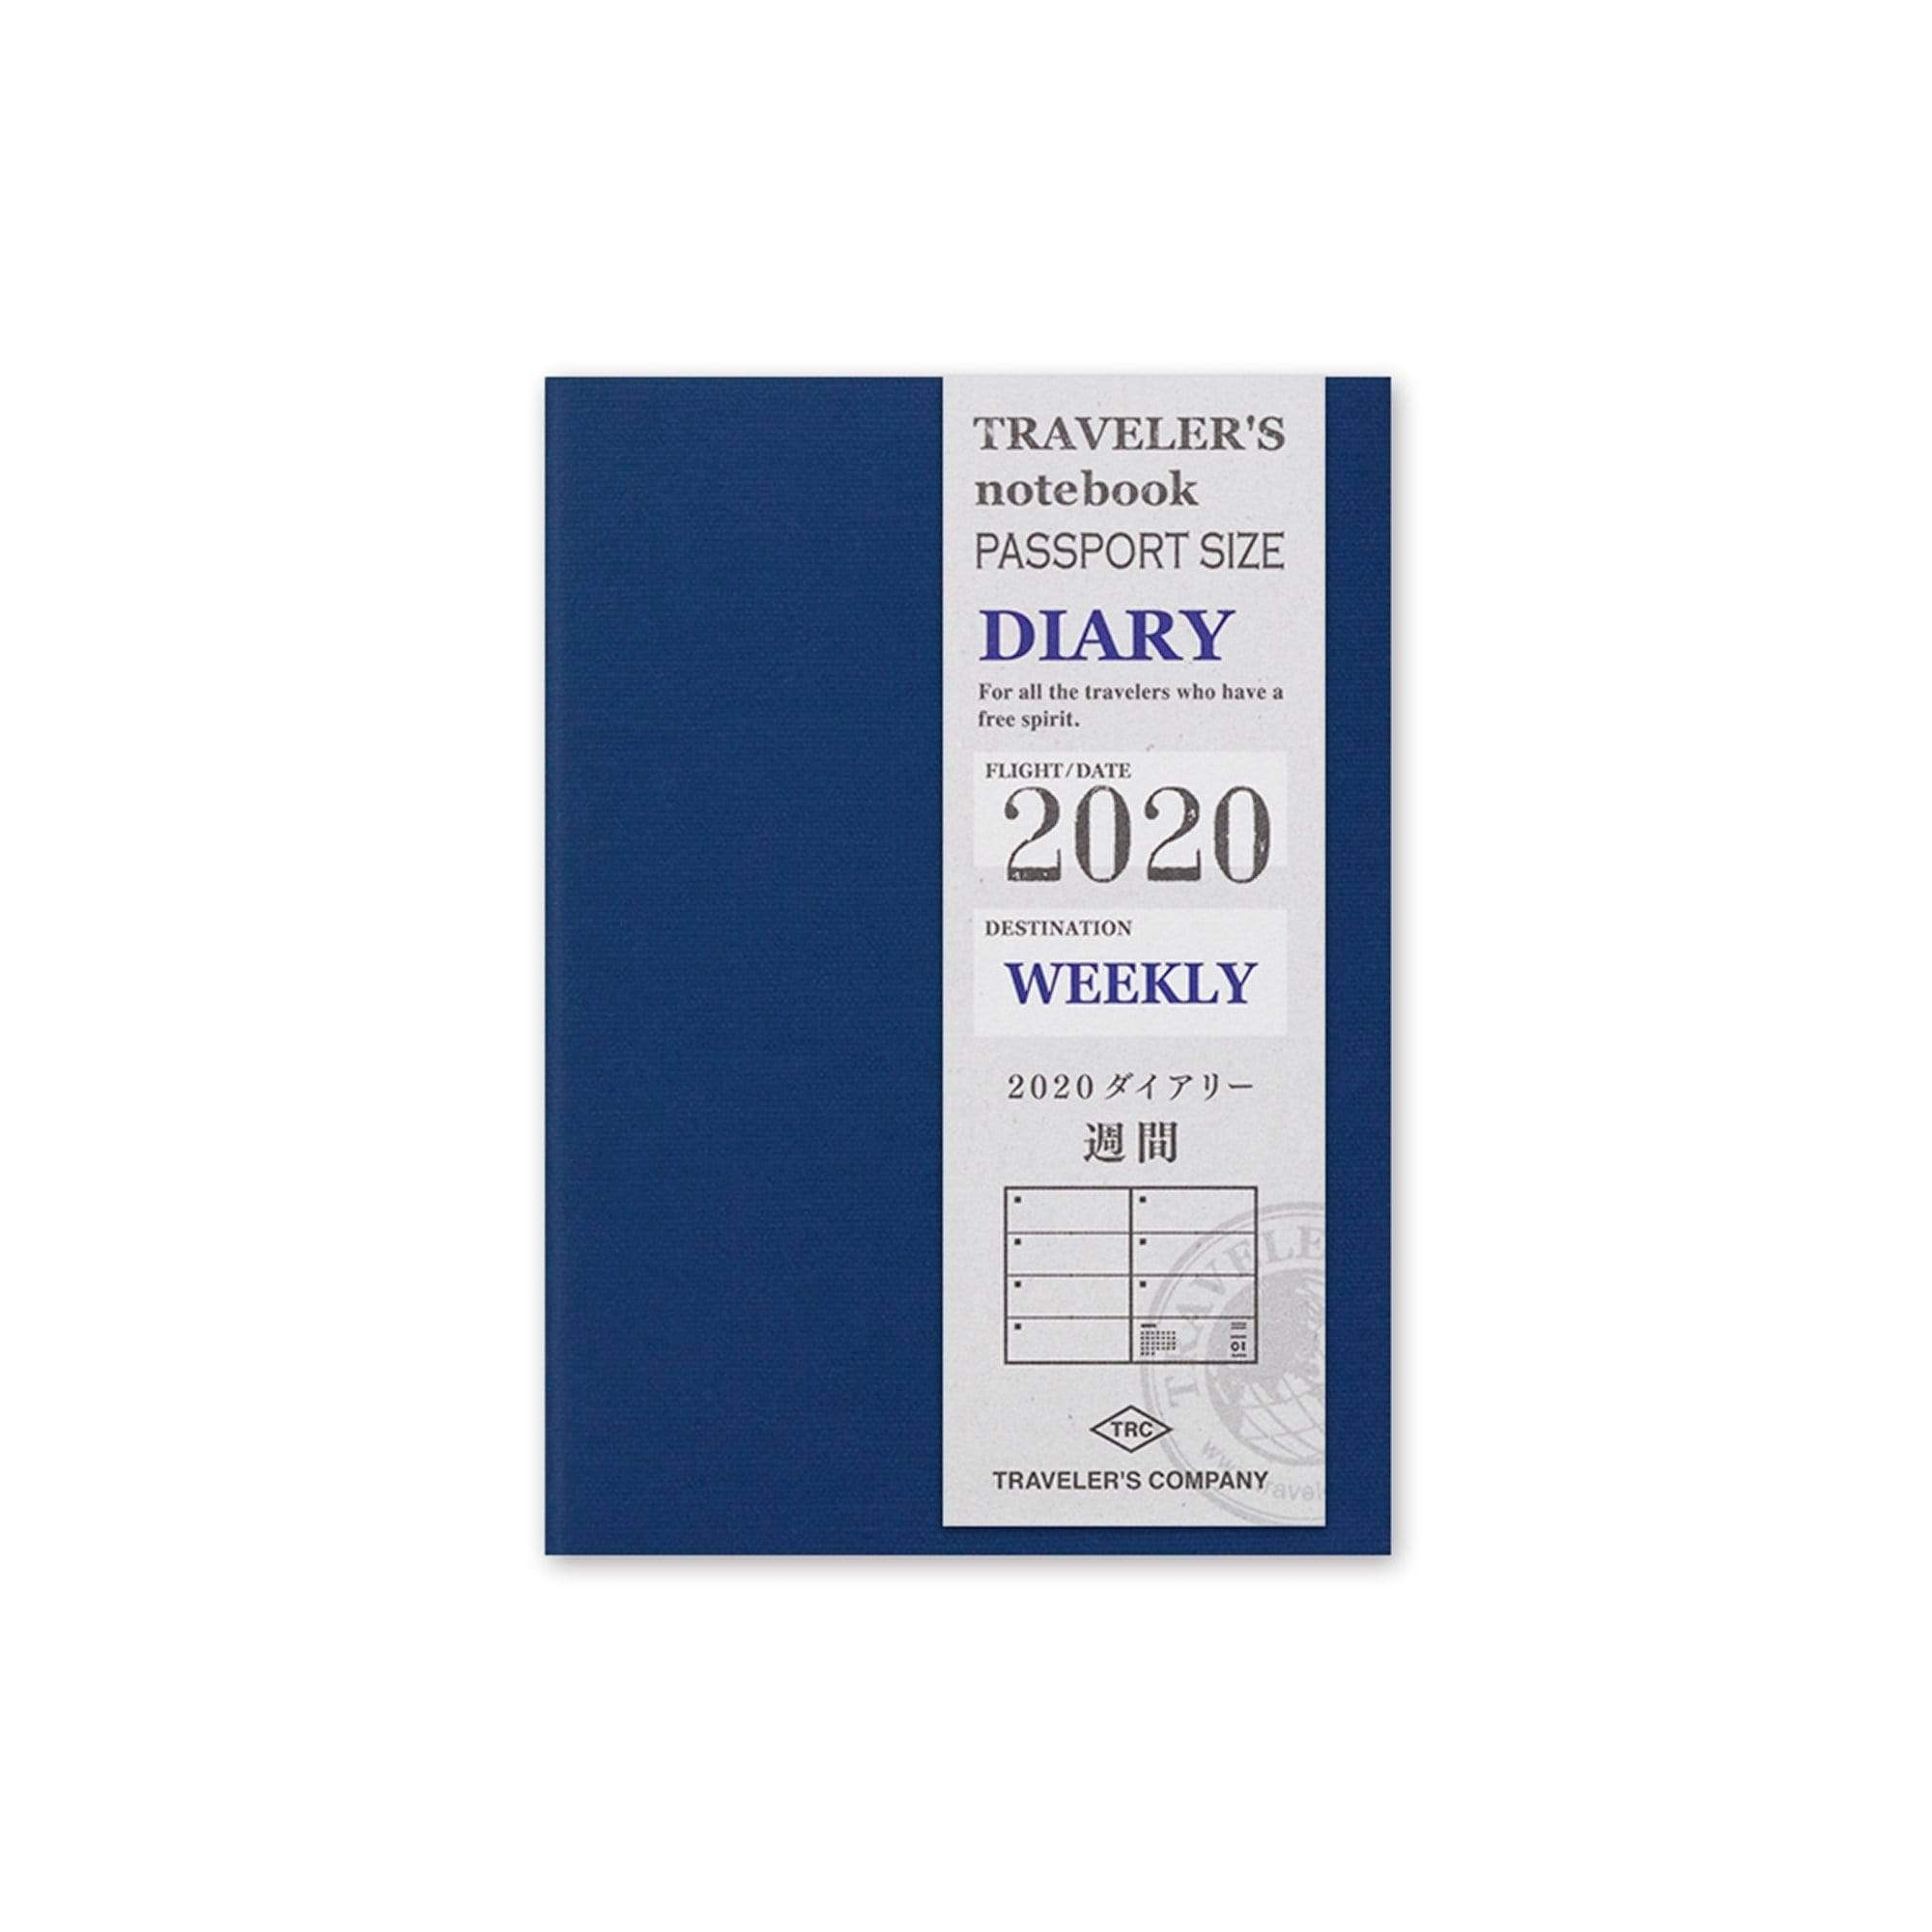 TRAVELER'S Company Notebook Diary 2020 Weekly + July thru December Guide Planner Refill | Passport Size - The Stationery Life!